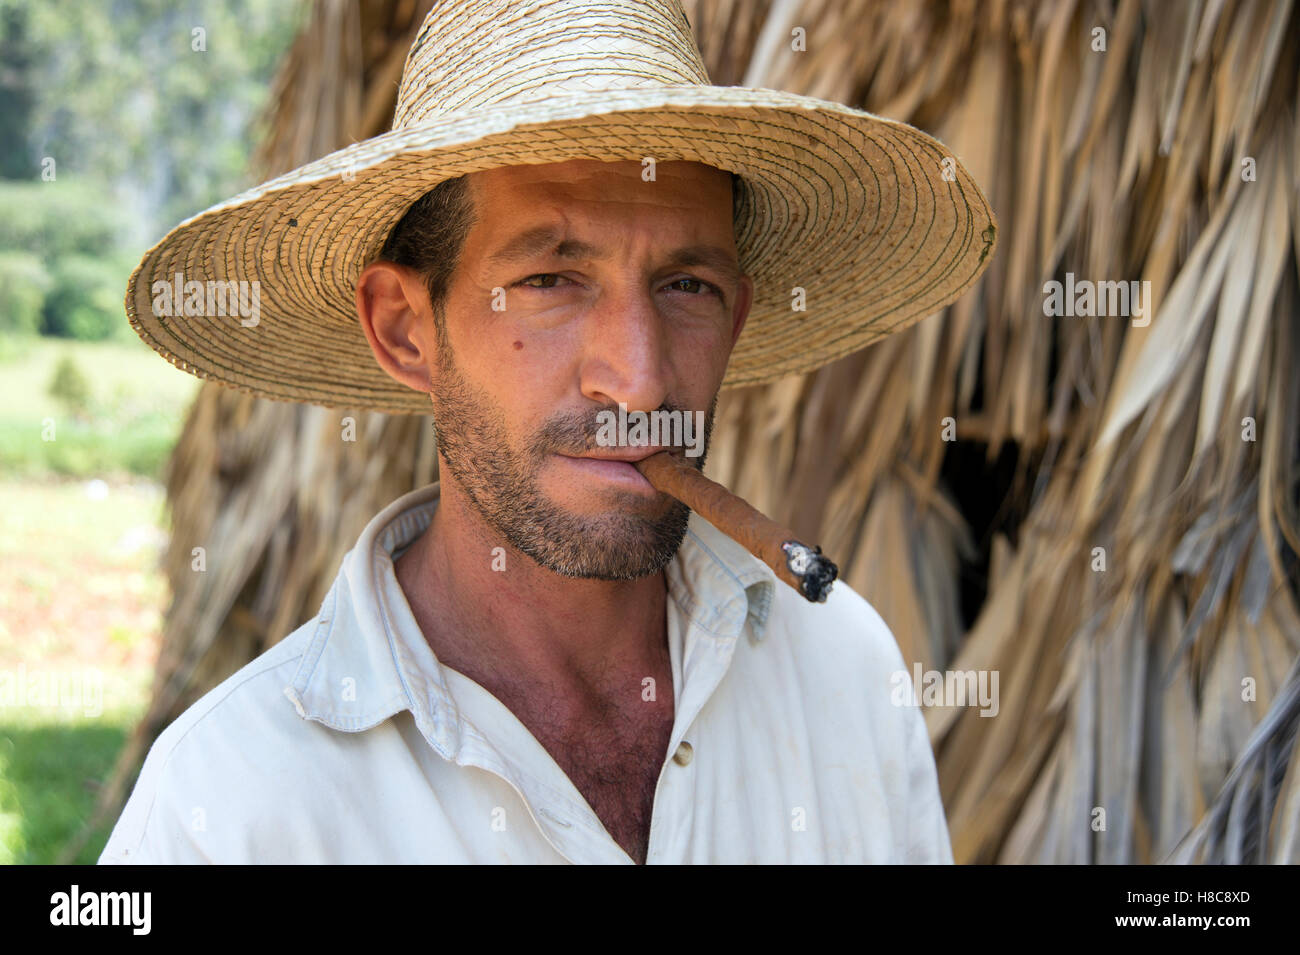 Portrait of a farmer wearing a straw hat smoking a cigar with the thatched tobacco drying house in the background - Stock Image